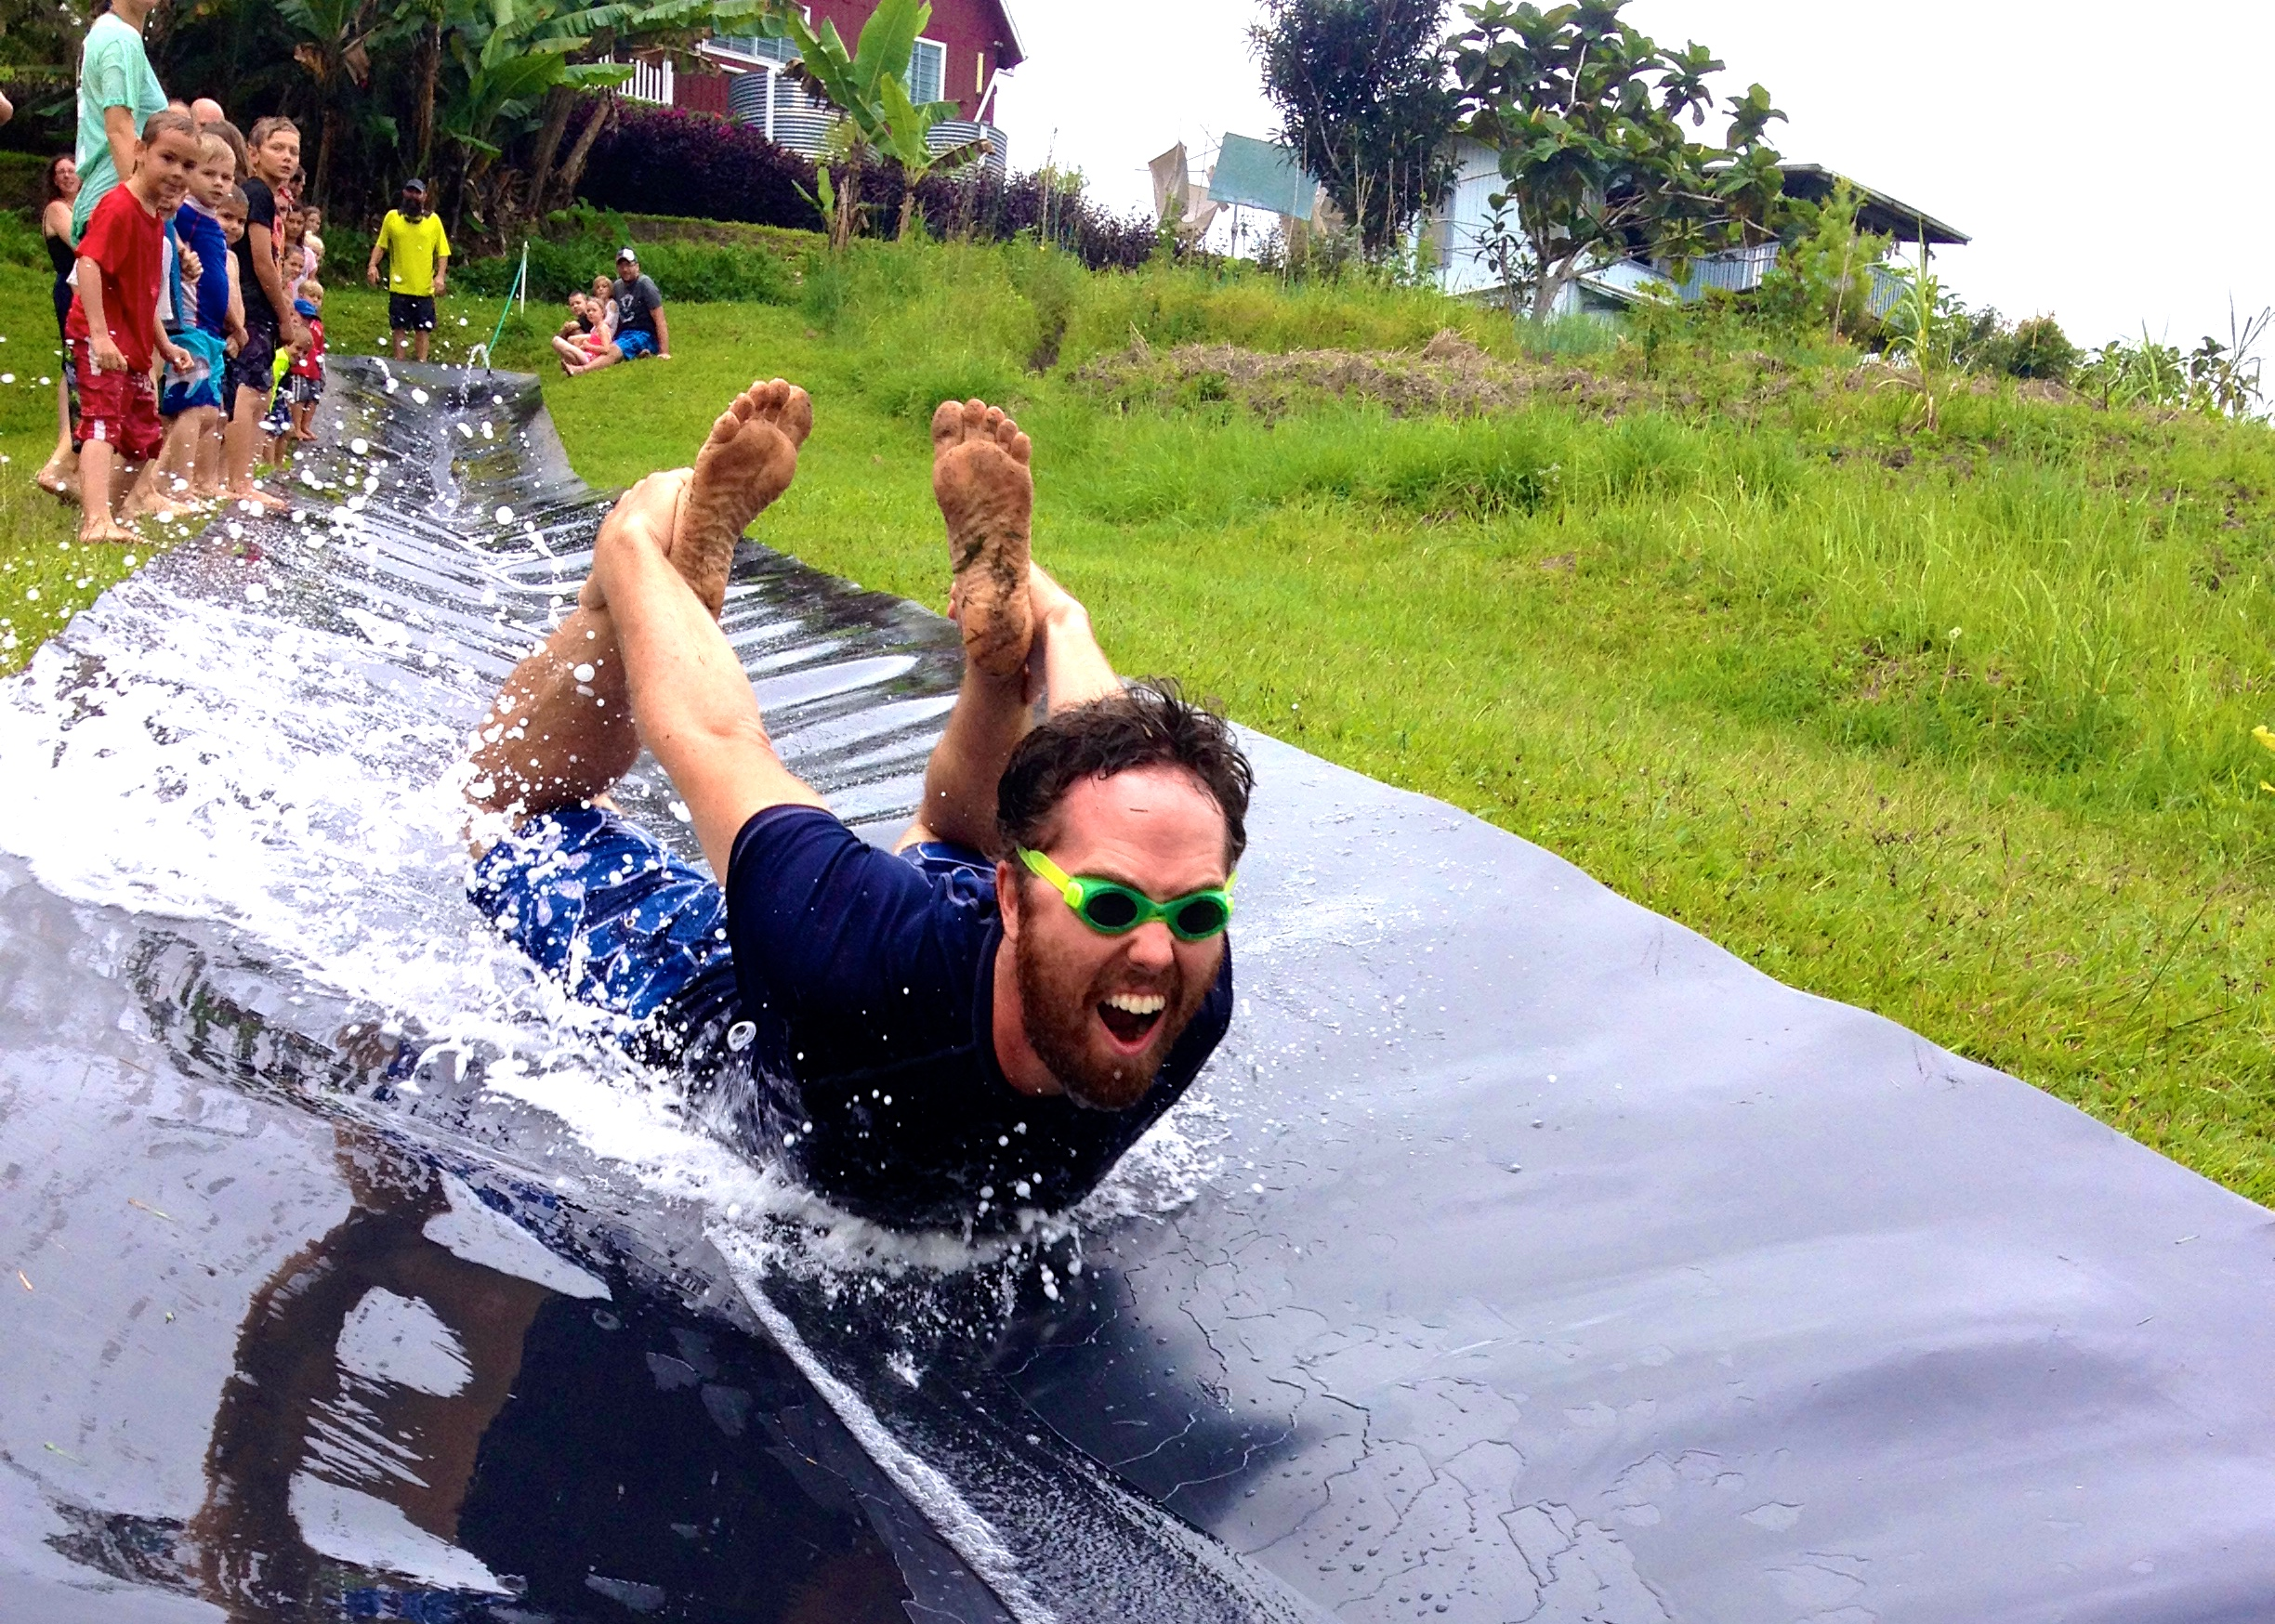 This picture of John at his slip and slide birthday party captures the feel of our life here. It is a full throttle adventure that you have to dive into head first, and when you do then you get the joy that comes with living on the edge in God's Story. (Note:the slip and slide is an old airport conveyor belt; we recycle everything here!)